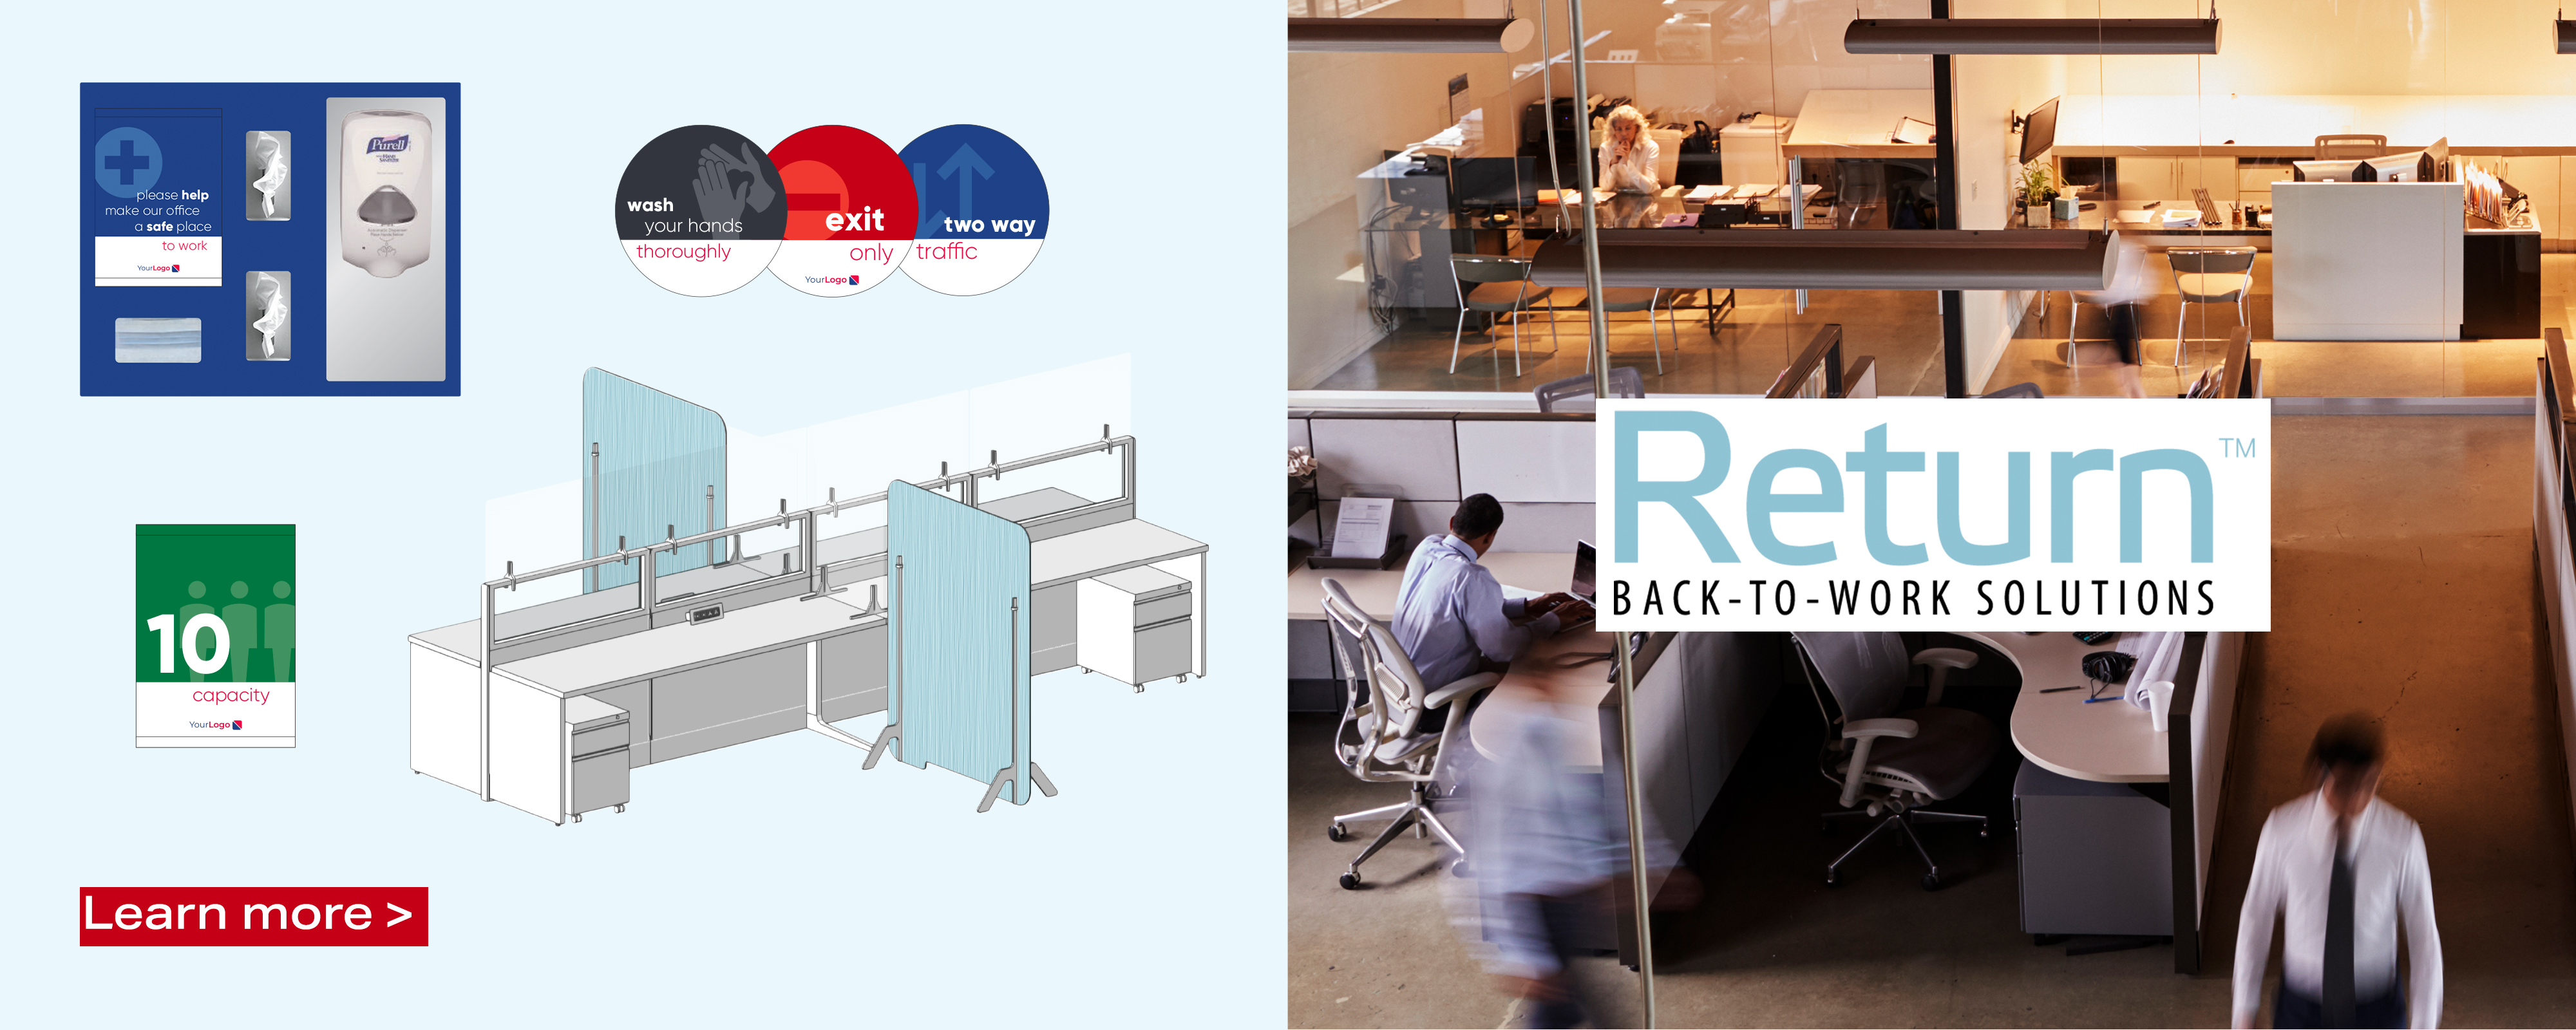 This Return services and product home page image displays the creative options that help to get people back to work.